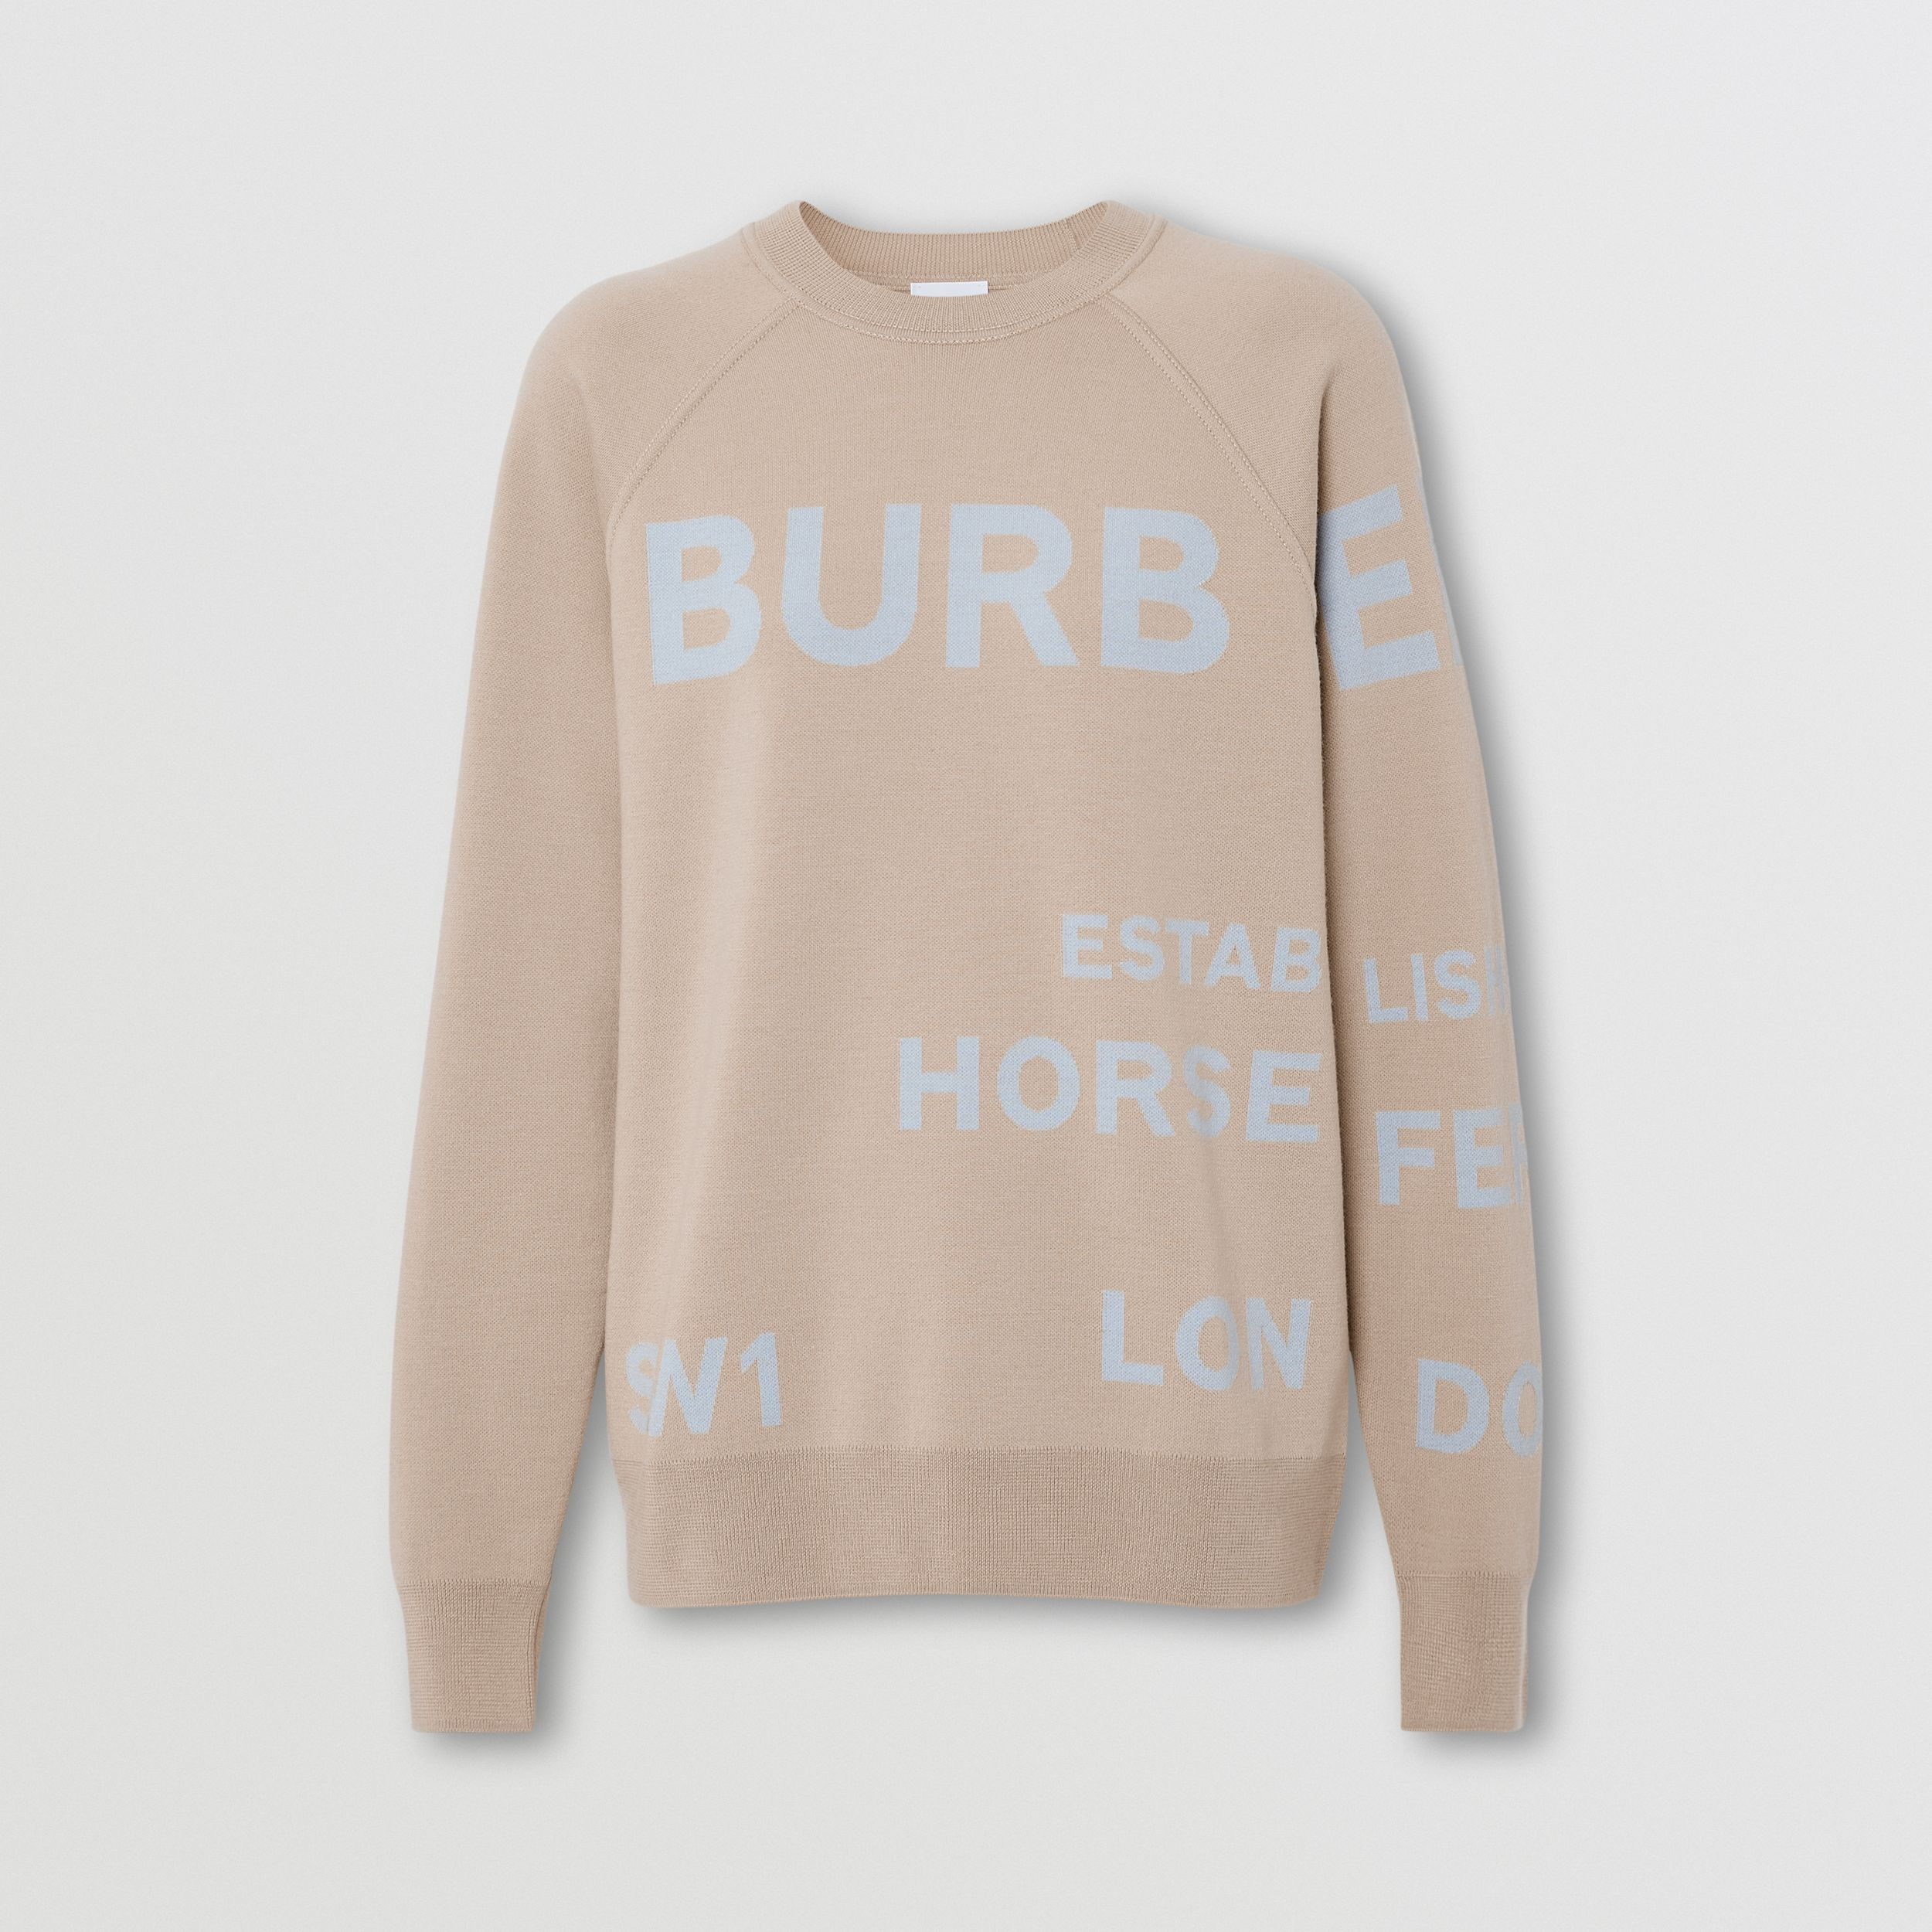 Horseferry Wool Blend Jacquard Sweater in Soft Fawn - Women | Burberry - 4